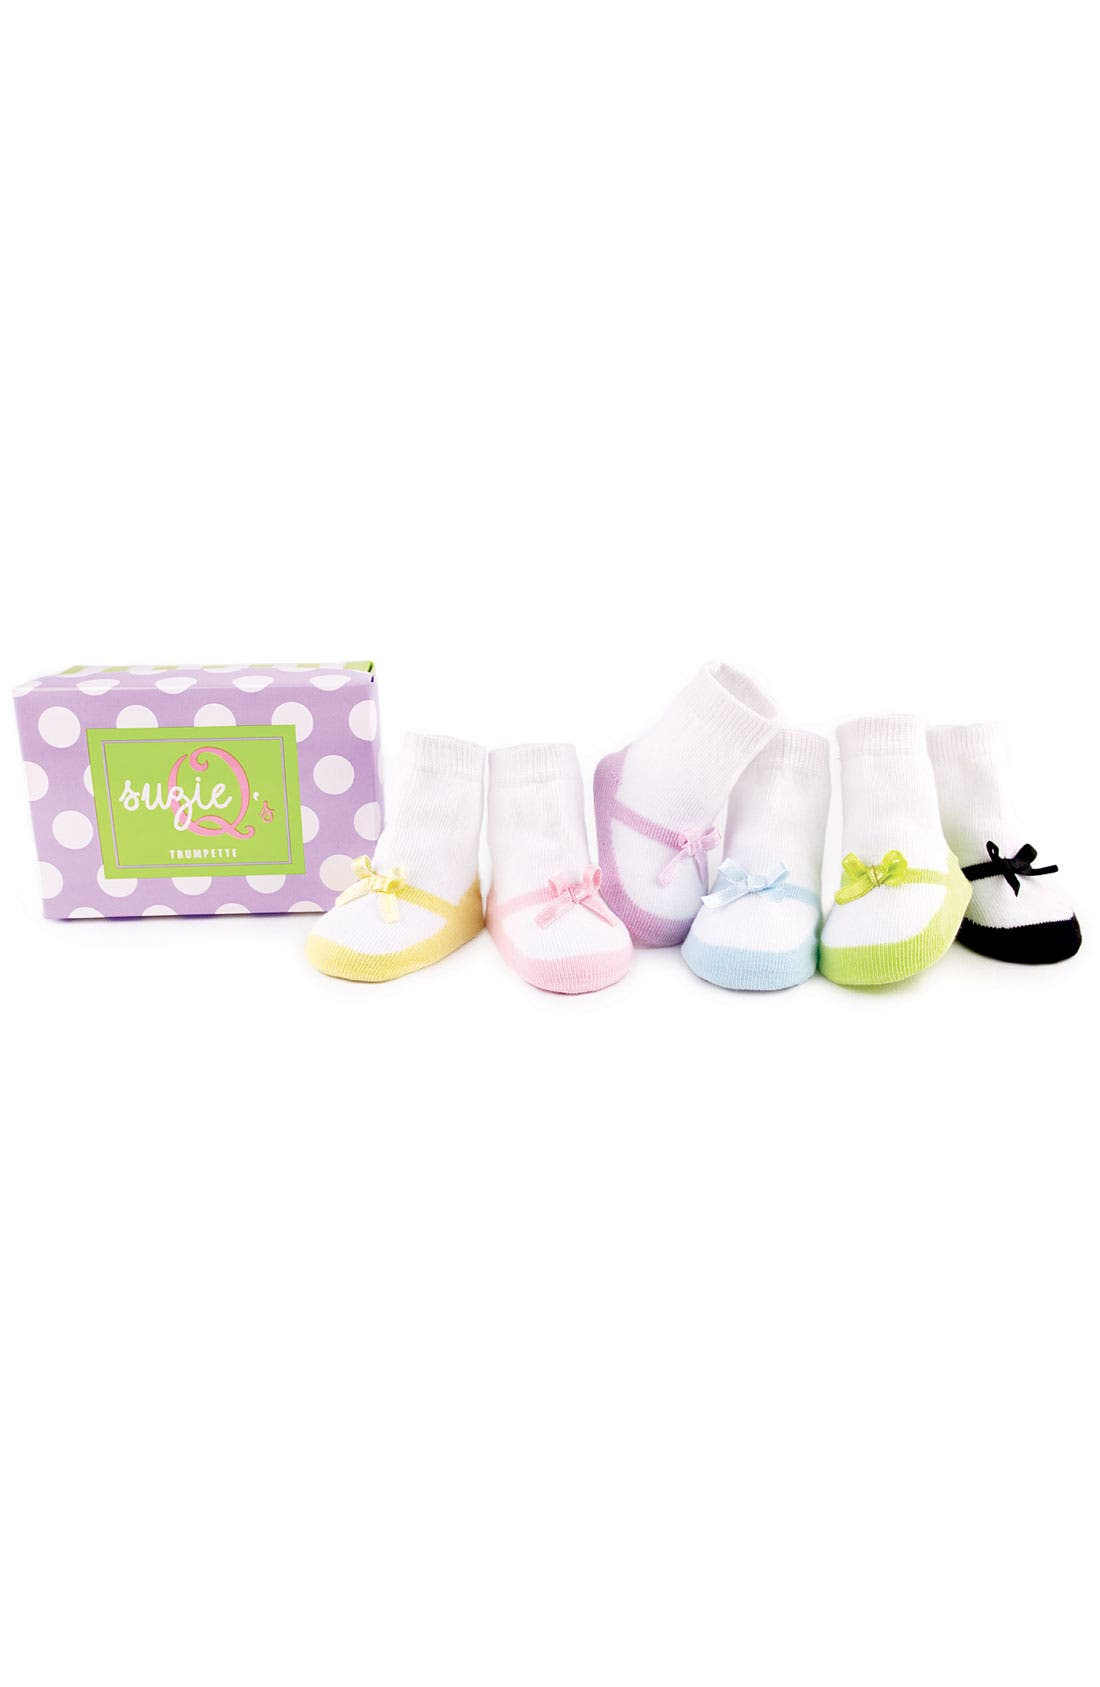 Main Image - Trumpette Socks (Toddler Girls)